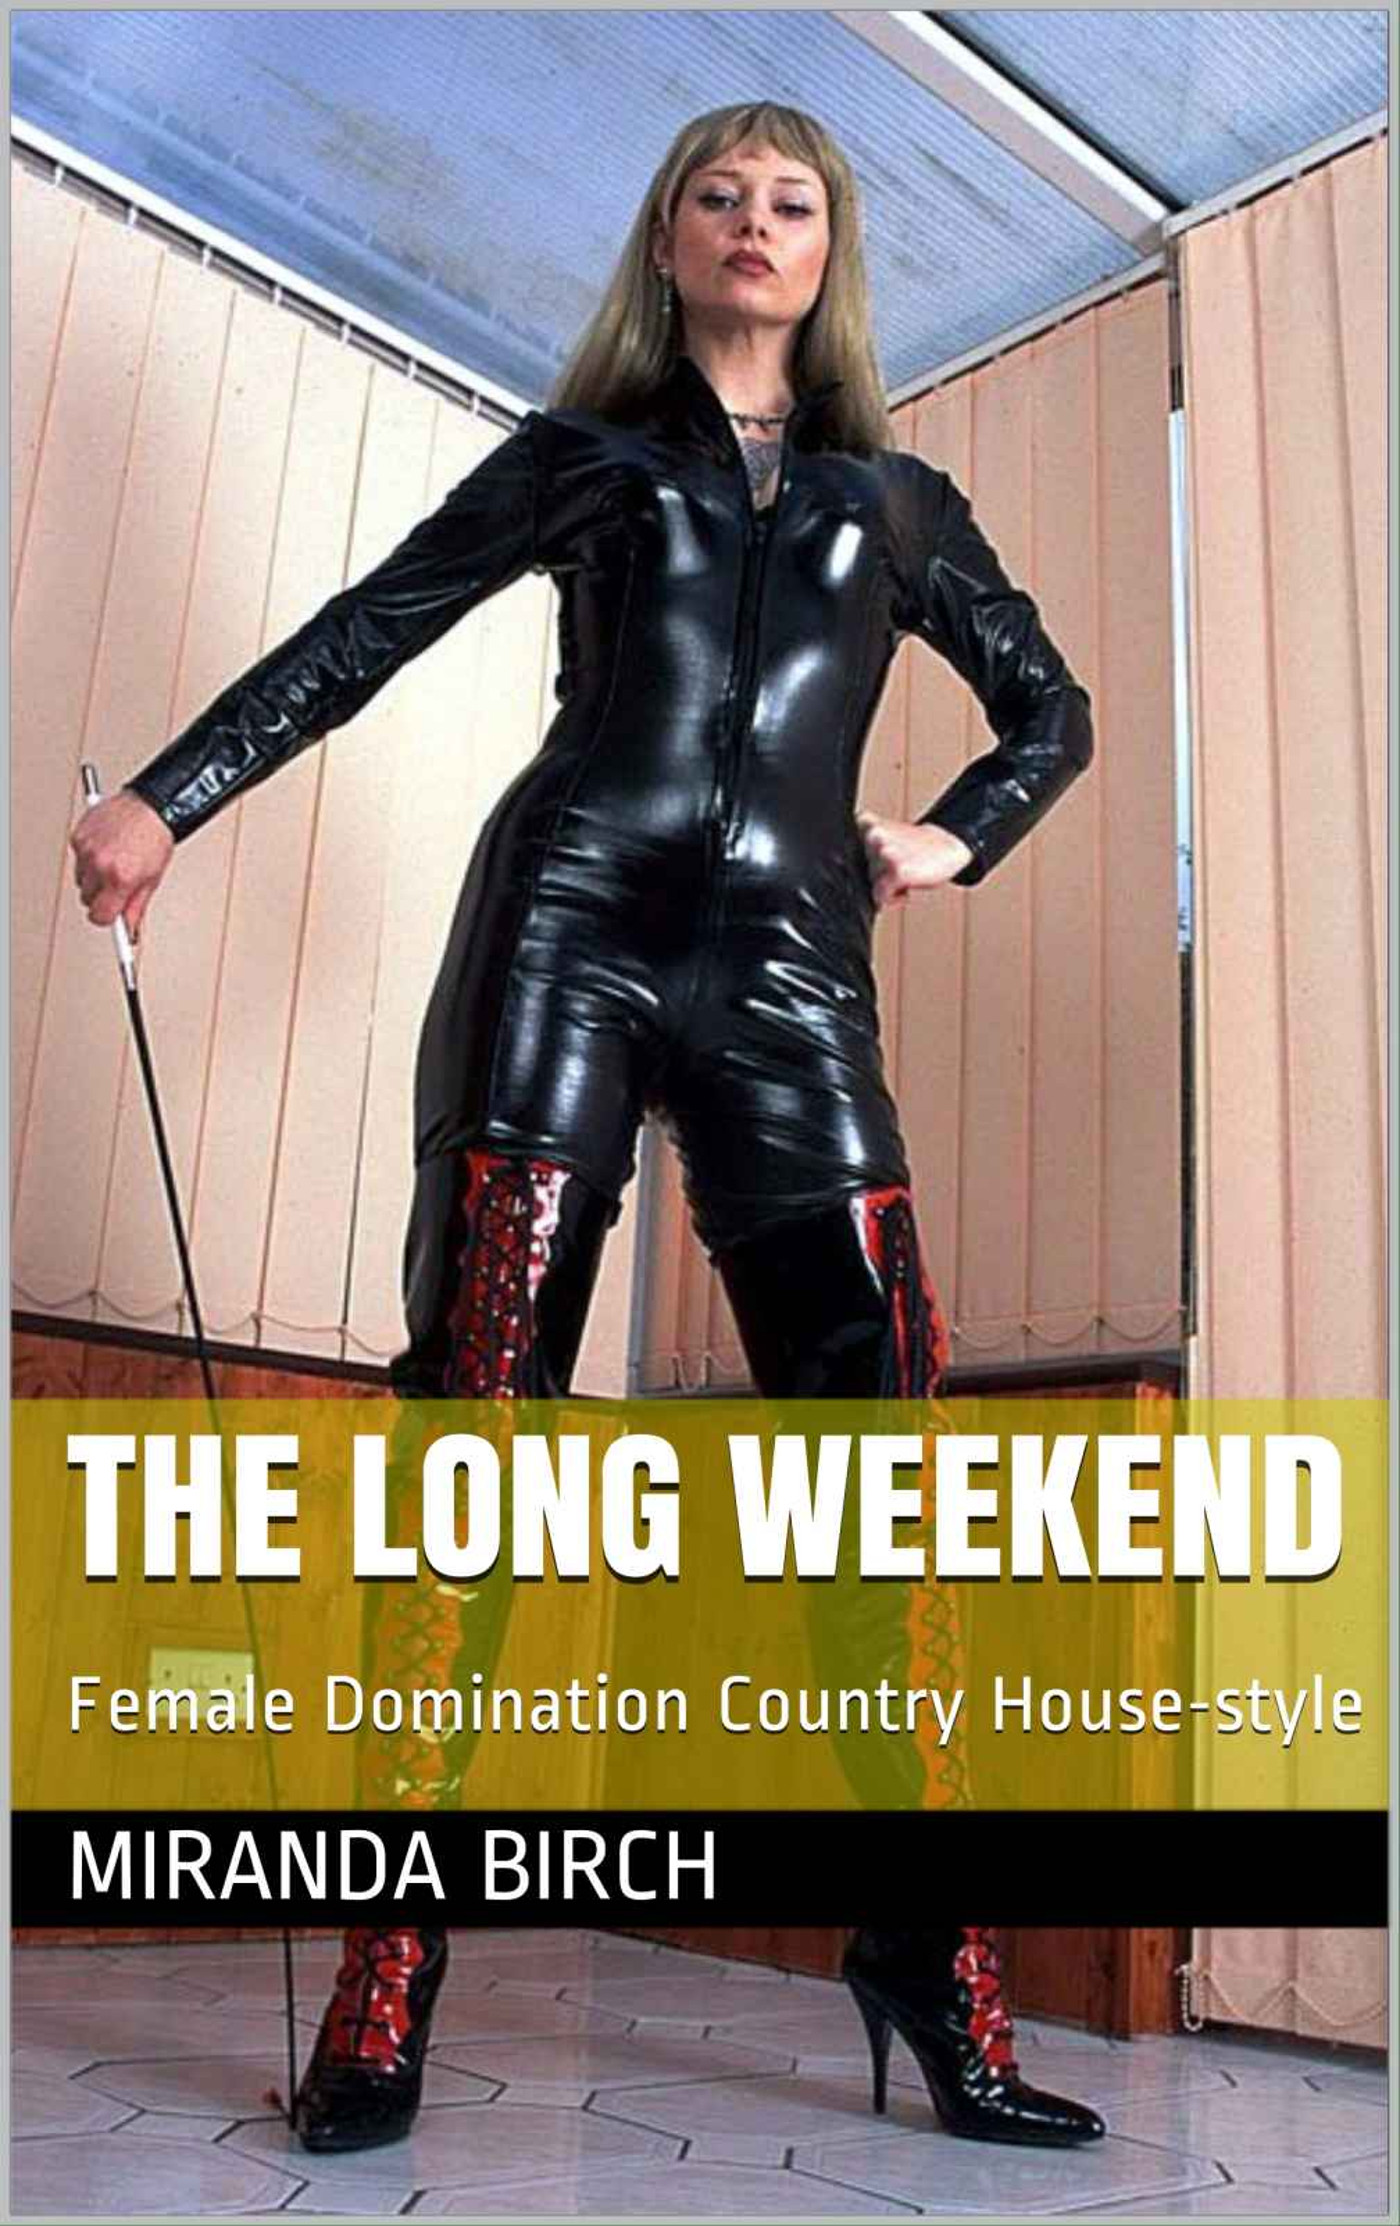 The Long Weekend: Female Domination, Country House-style, an Ebook by  Miranda Birch